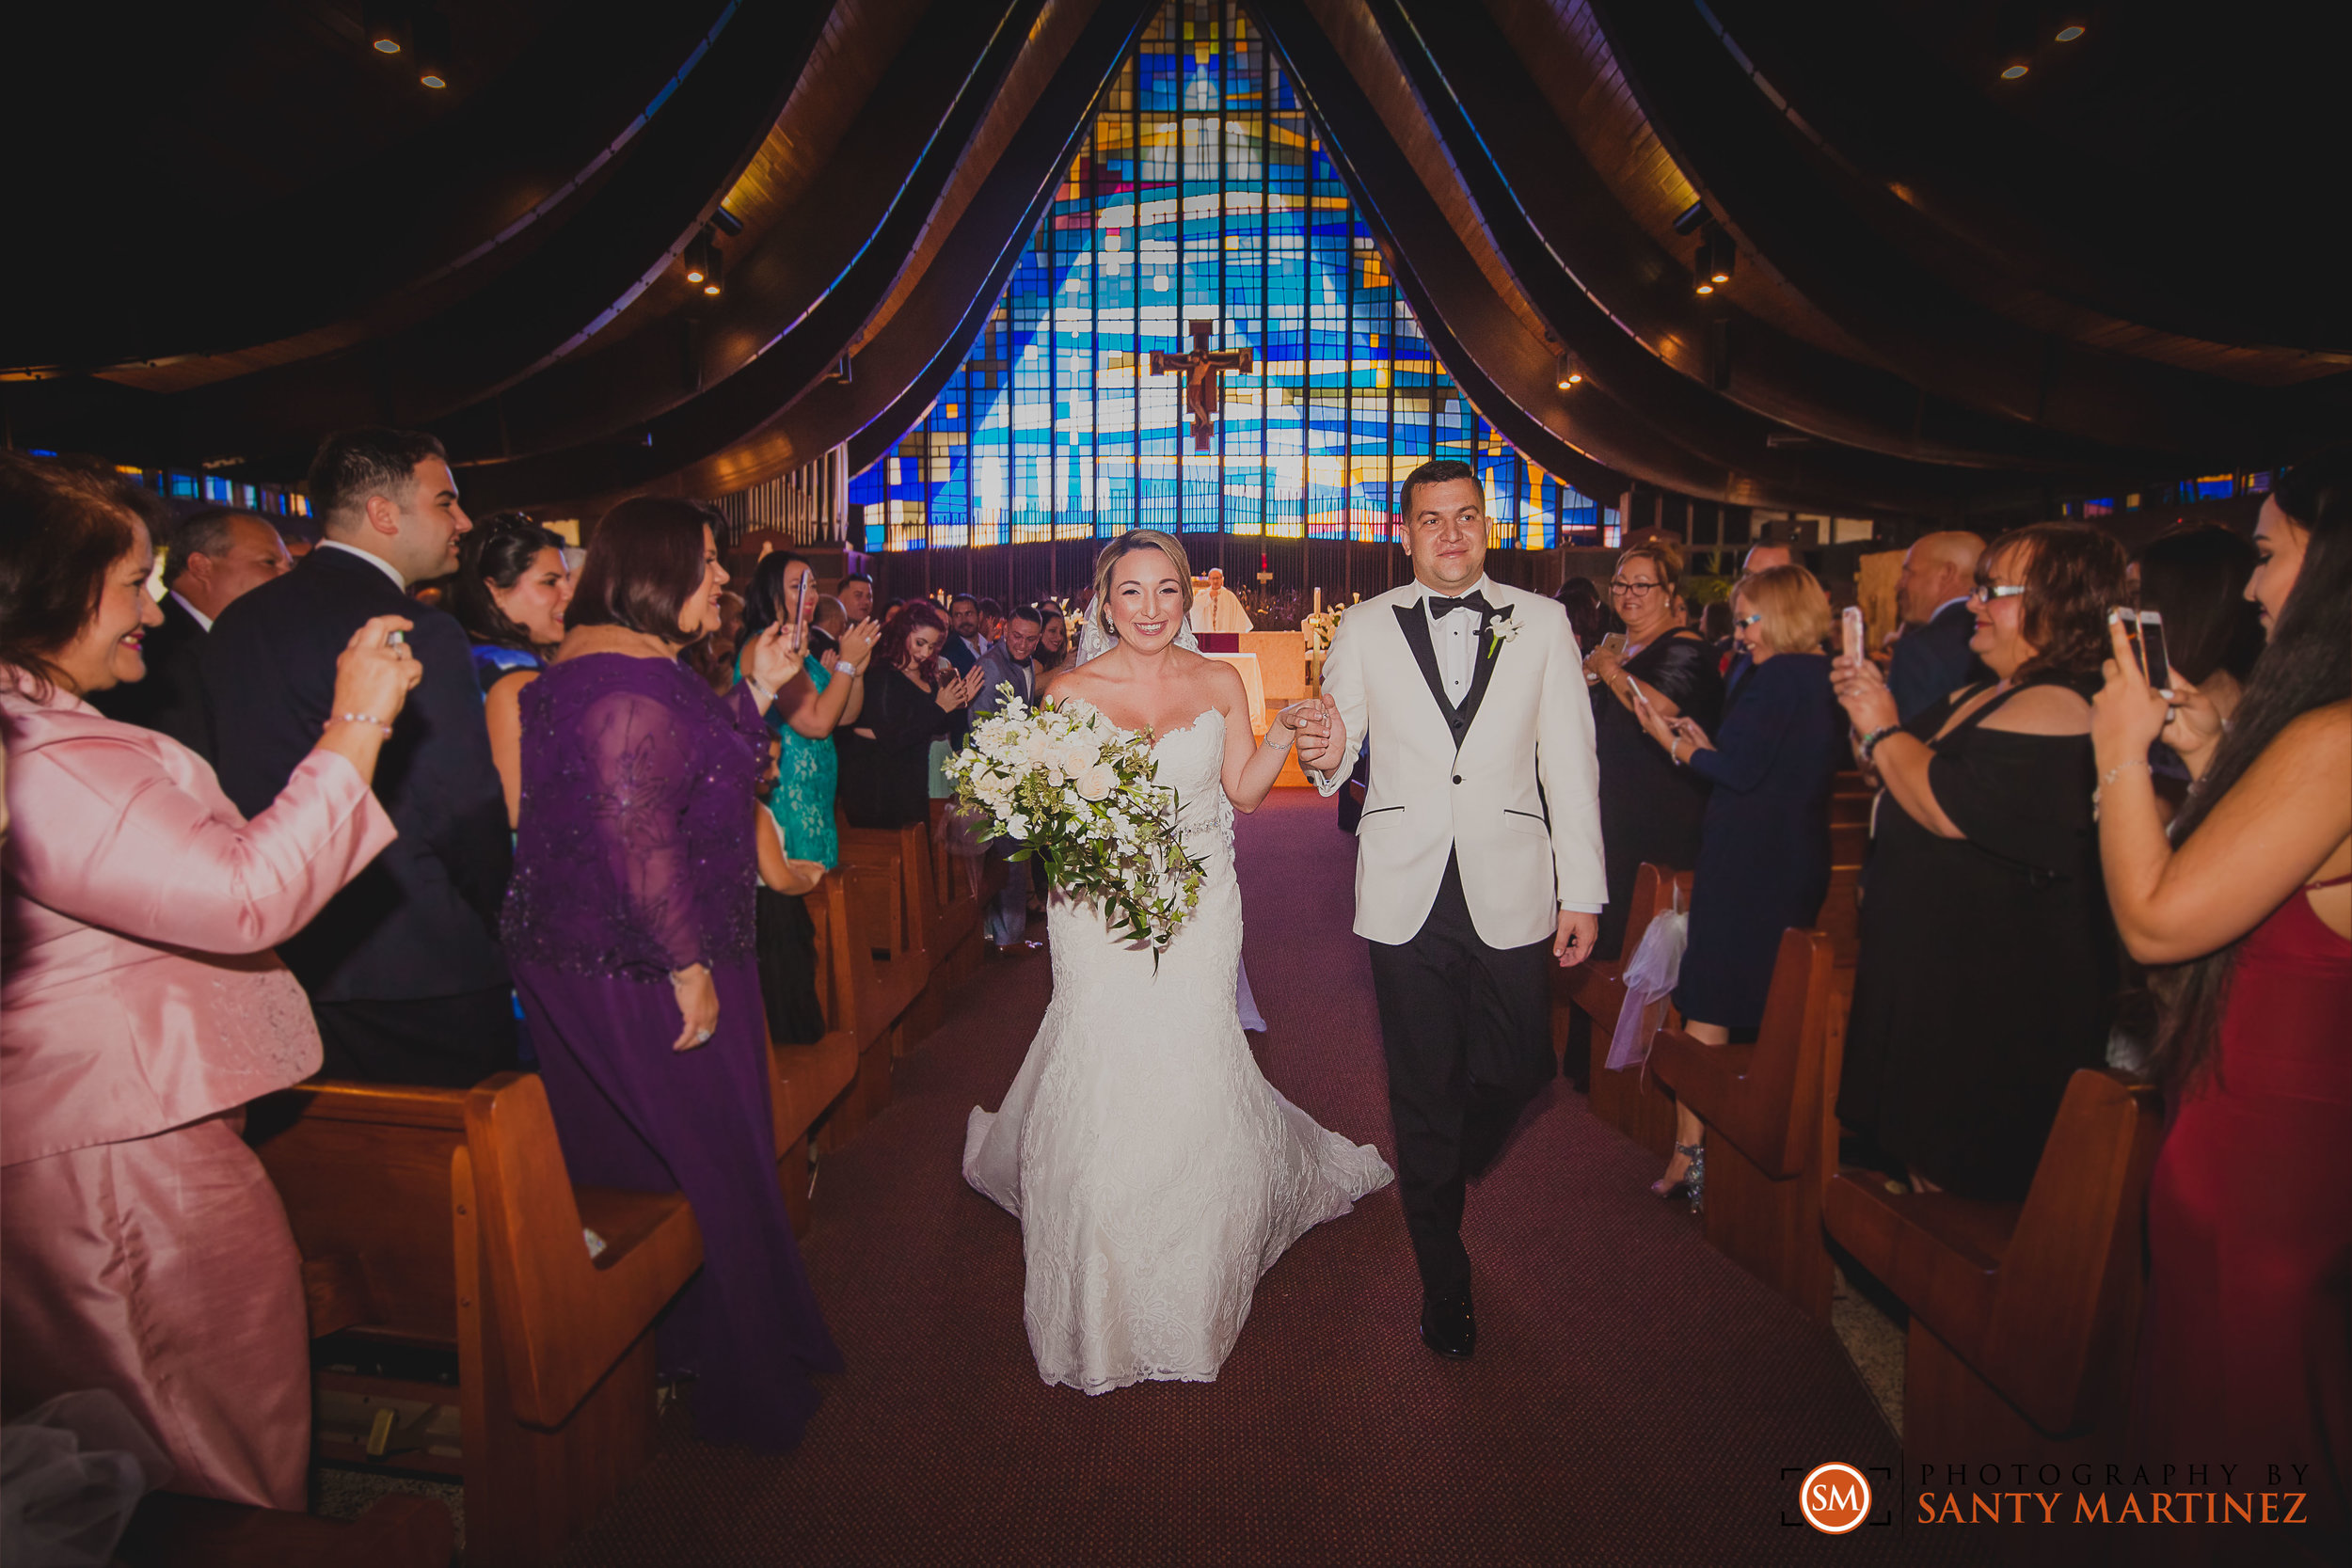 Wedding - St Hugh Catholic Church - Rusty Pelican - Key Biscayne - Photography by Santy Martinez-25.jpg